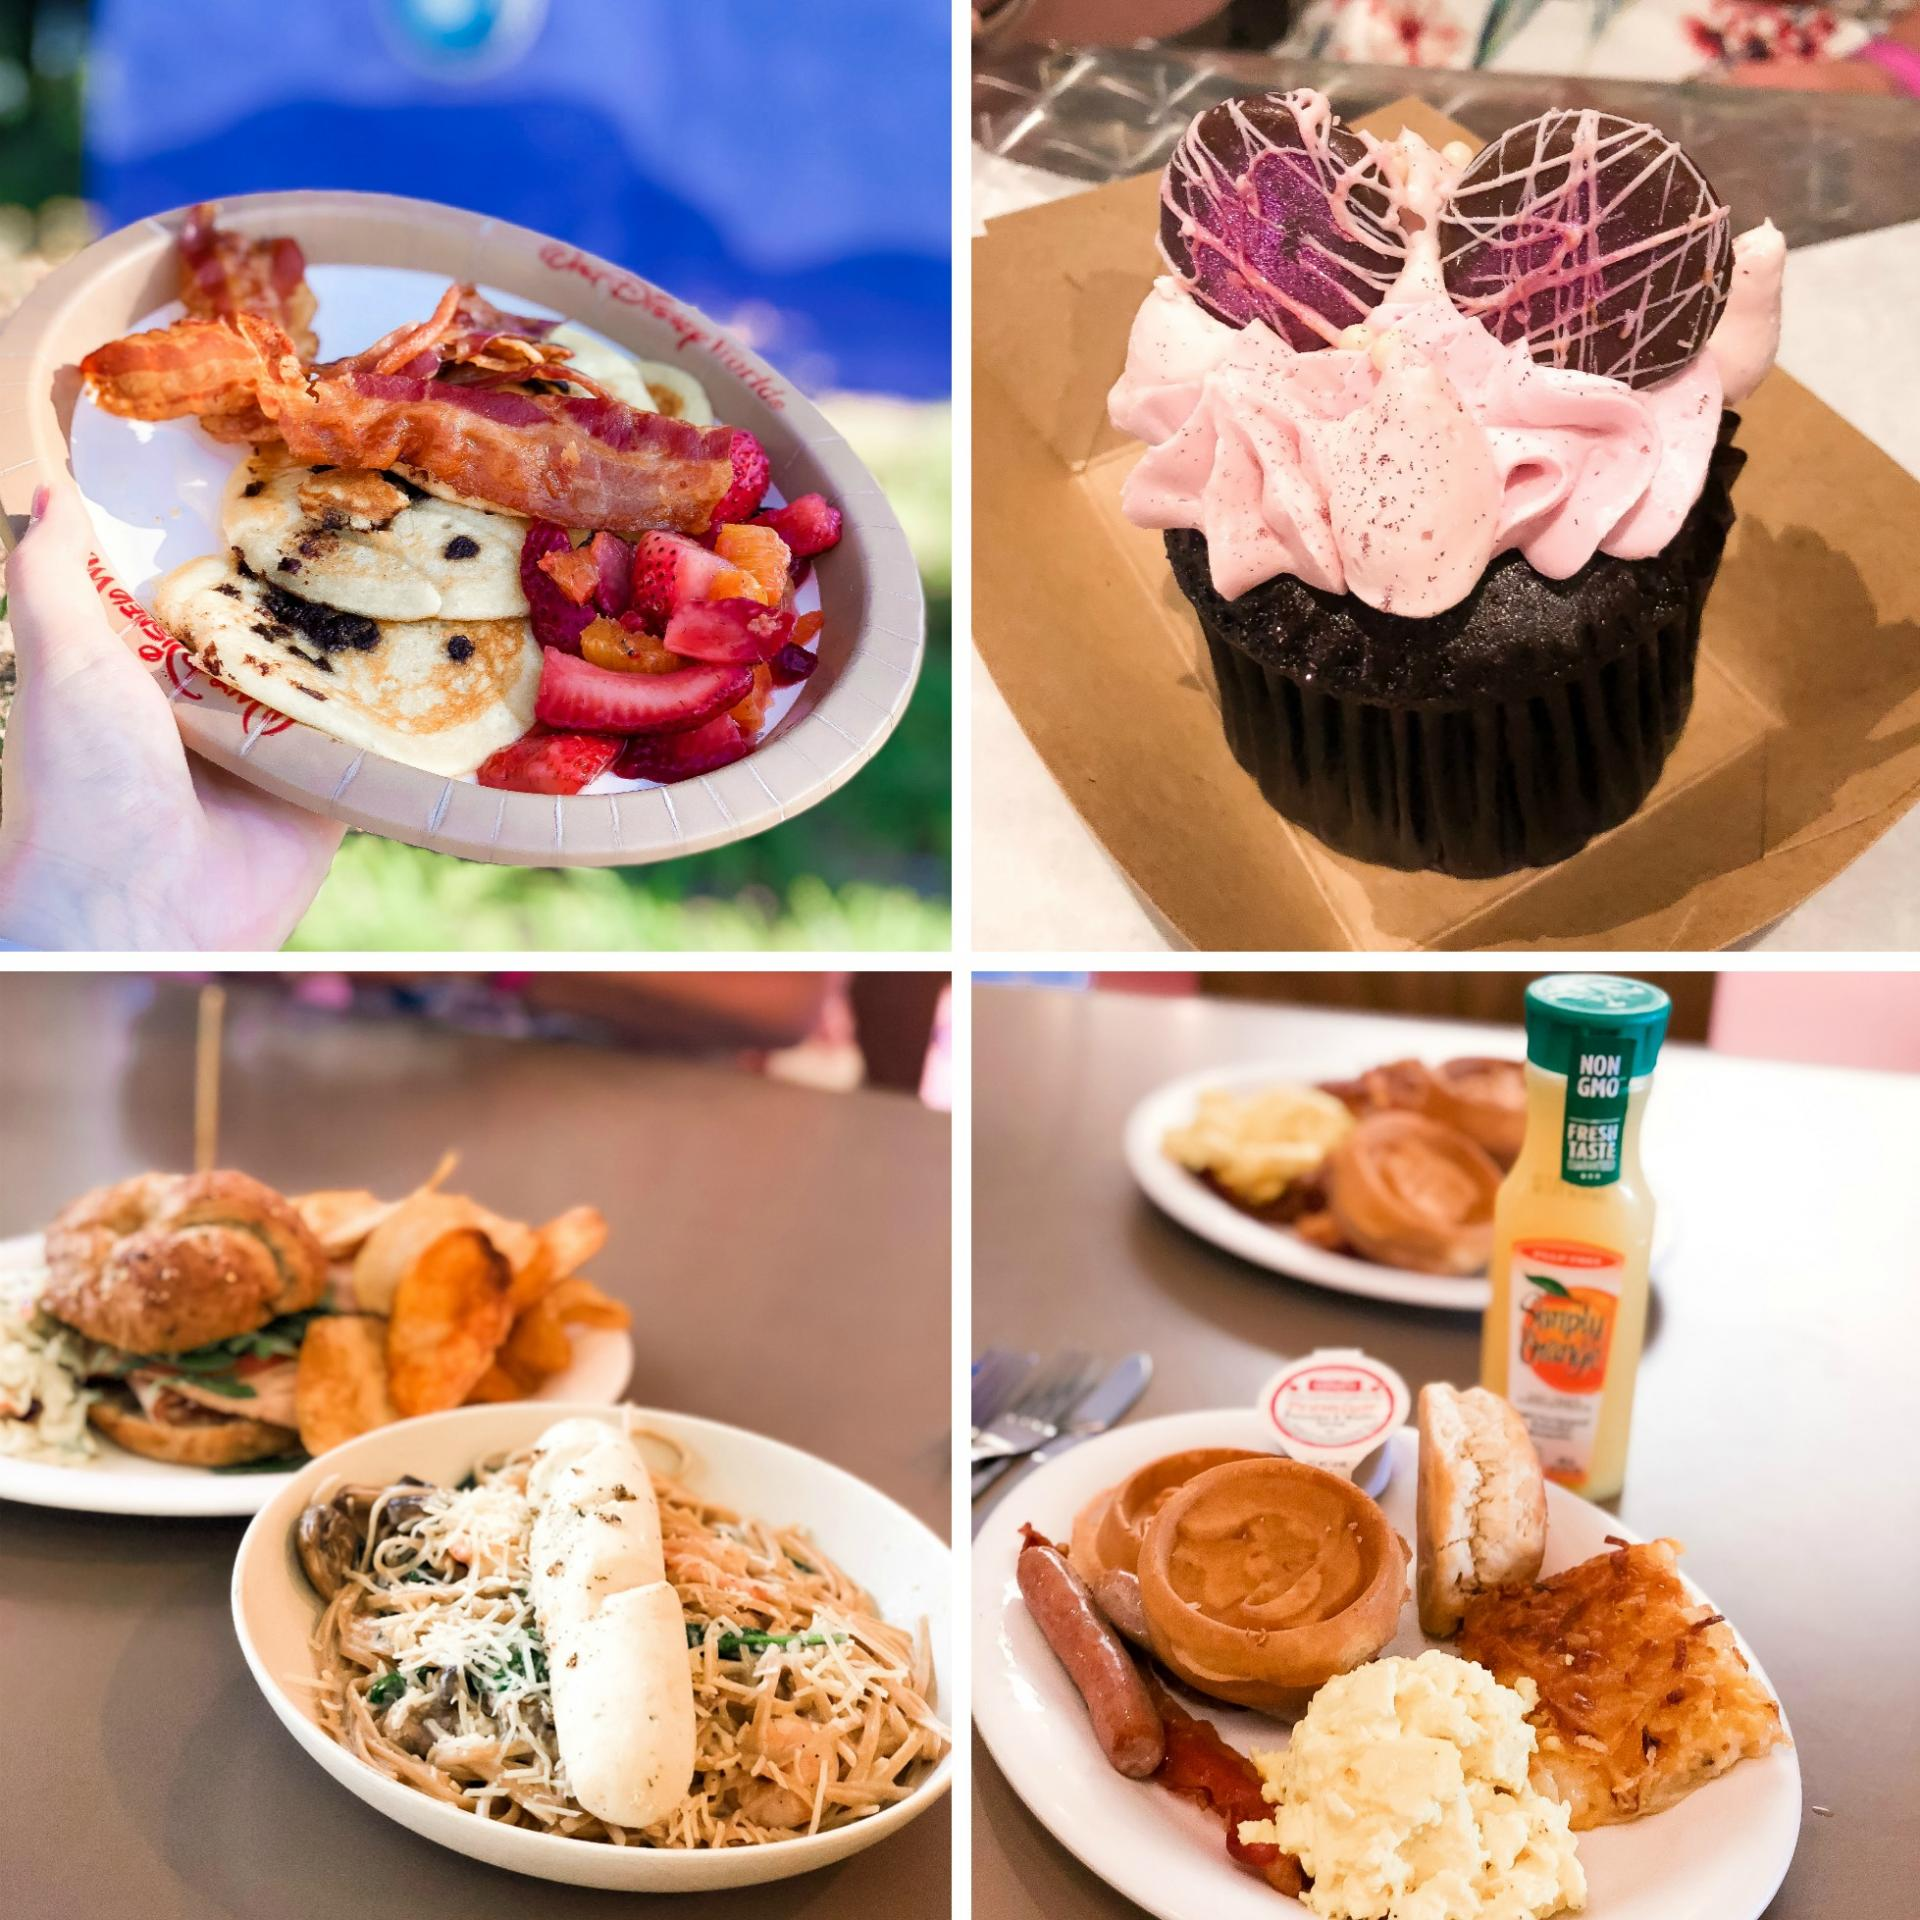 Selection of food available at Art of Animation Resort